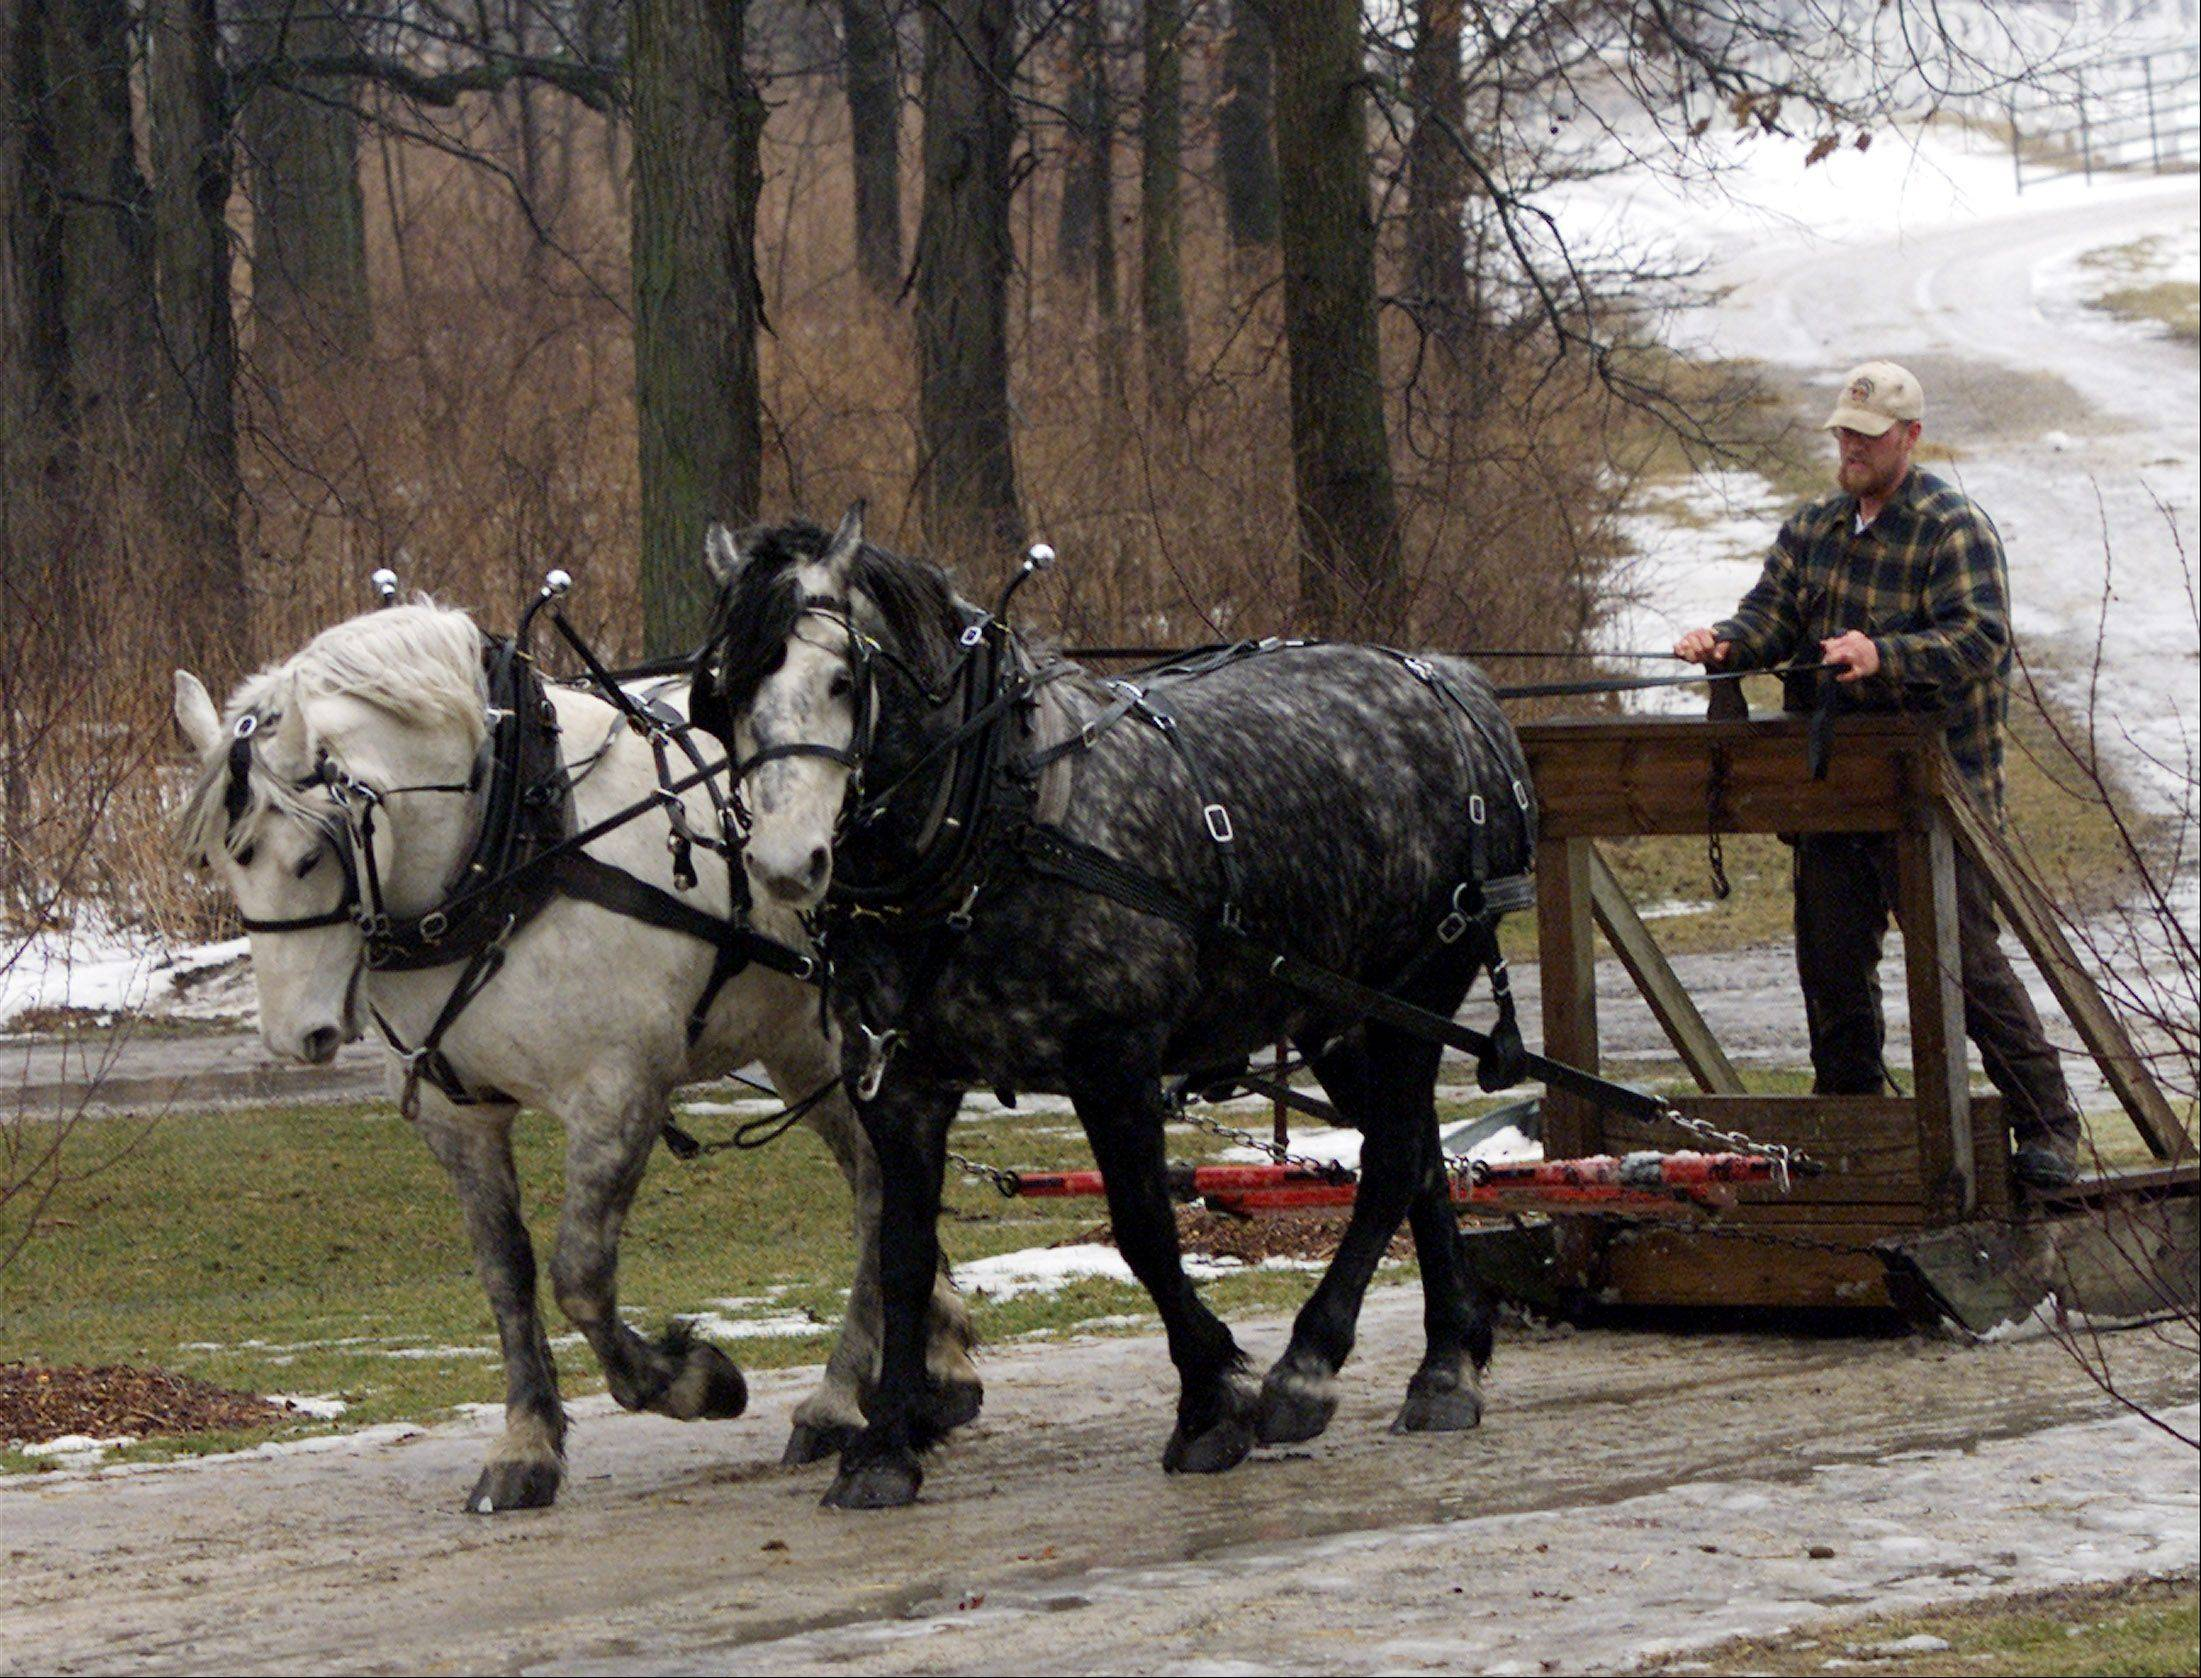 Their sleigh and hayride days behind them, retired mares Rosie, right, and June may get to spend the rest of their lives greeting visitors to the Danada Equestrian Center.